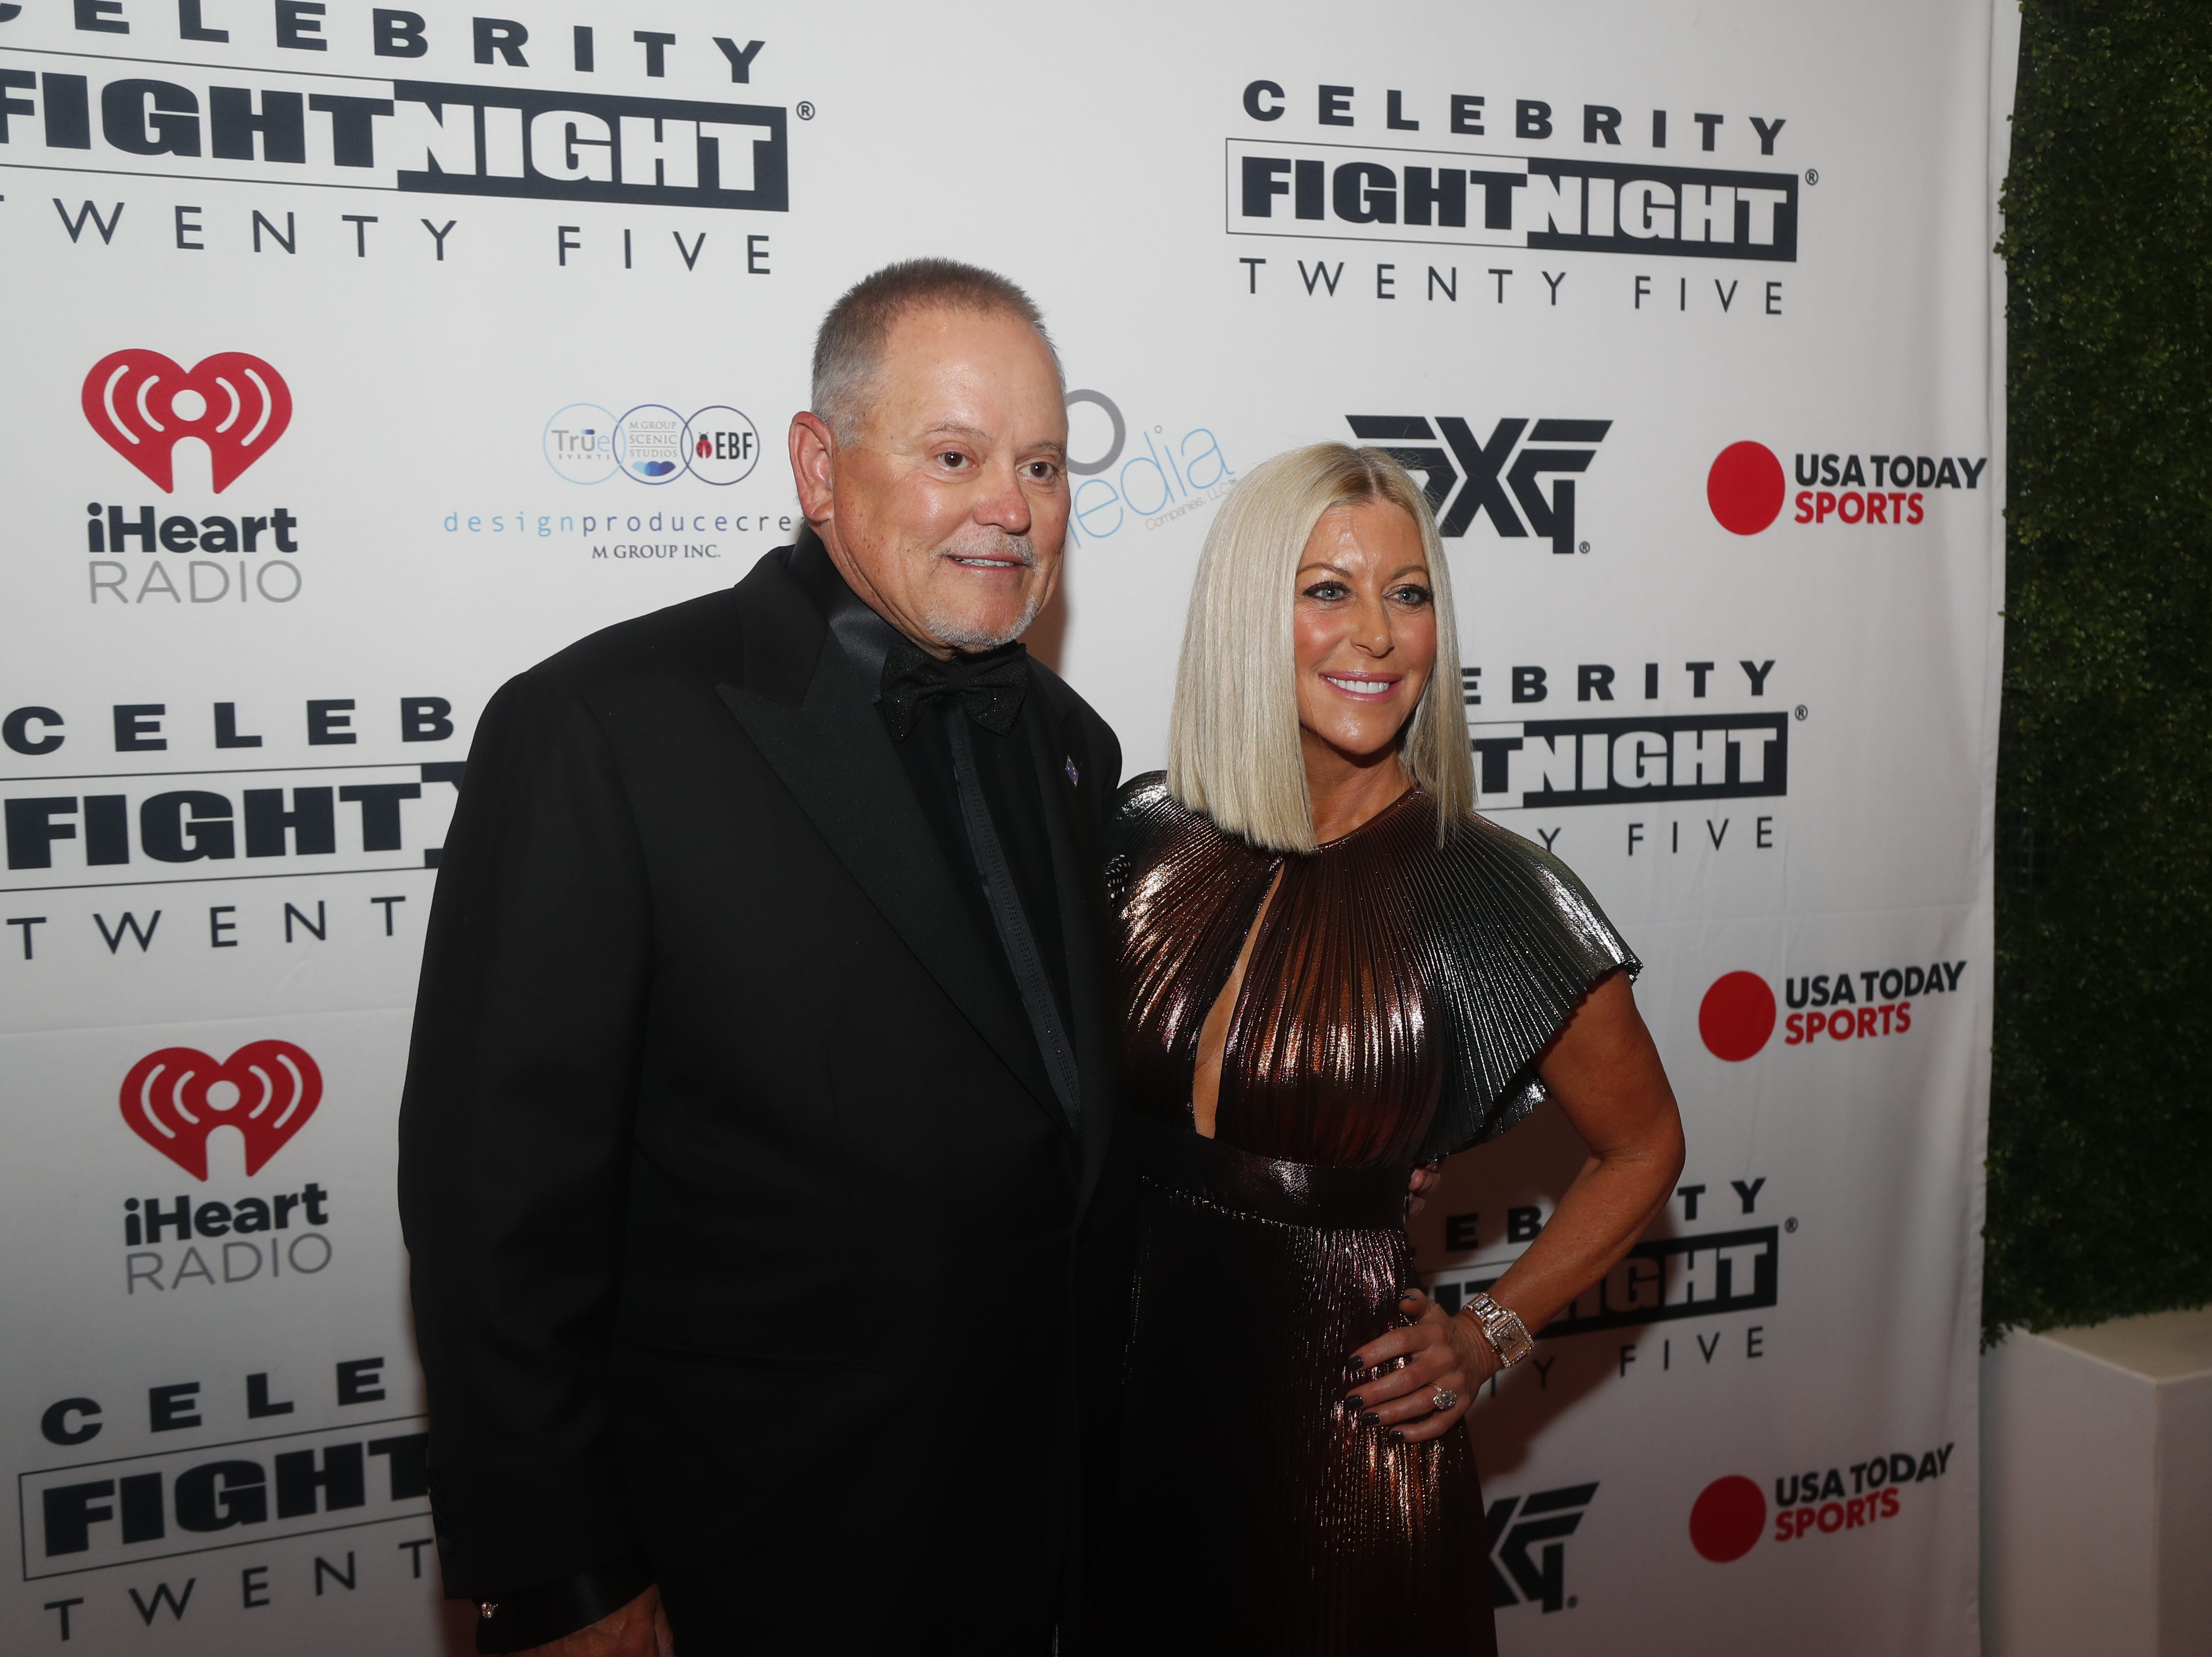 Renee and Bob Parsons poses for pictures during the Celebrity Fight Night red carpet in Scottsdale, Ariz., on March 23, 2019.